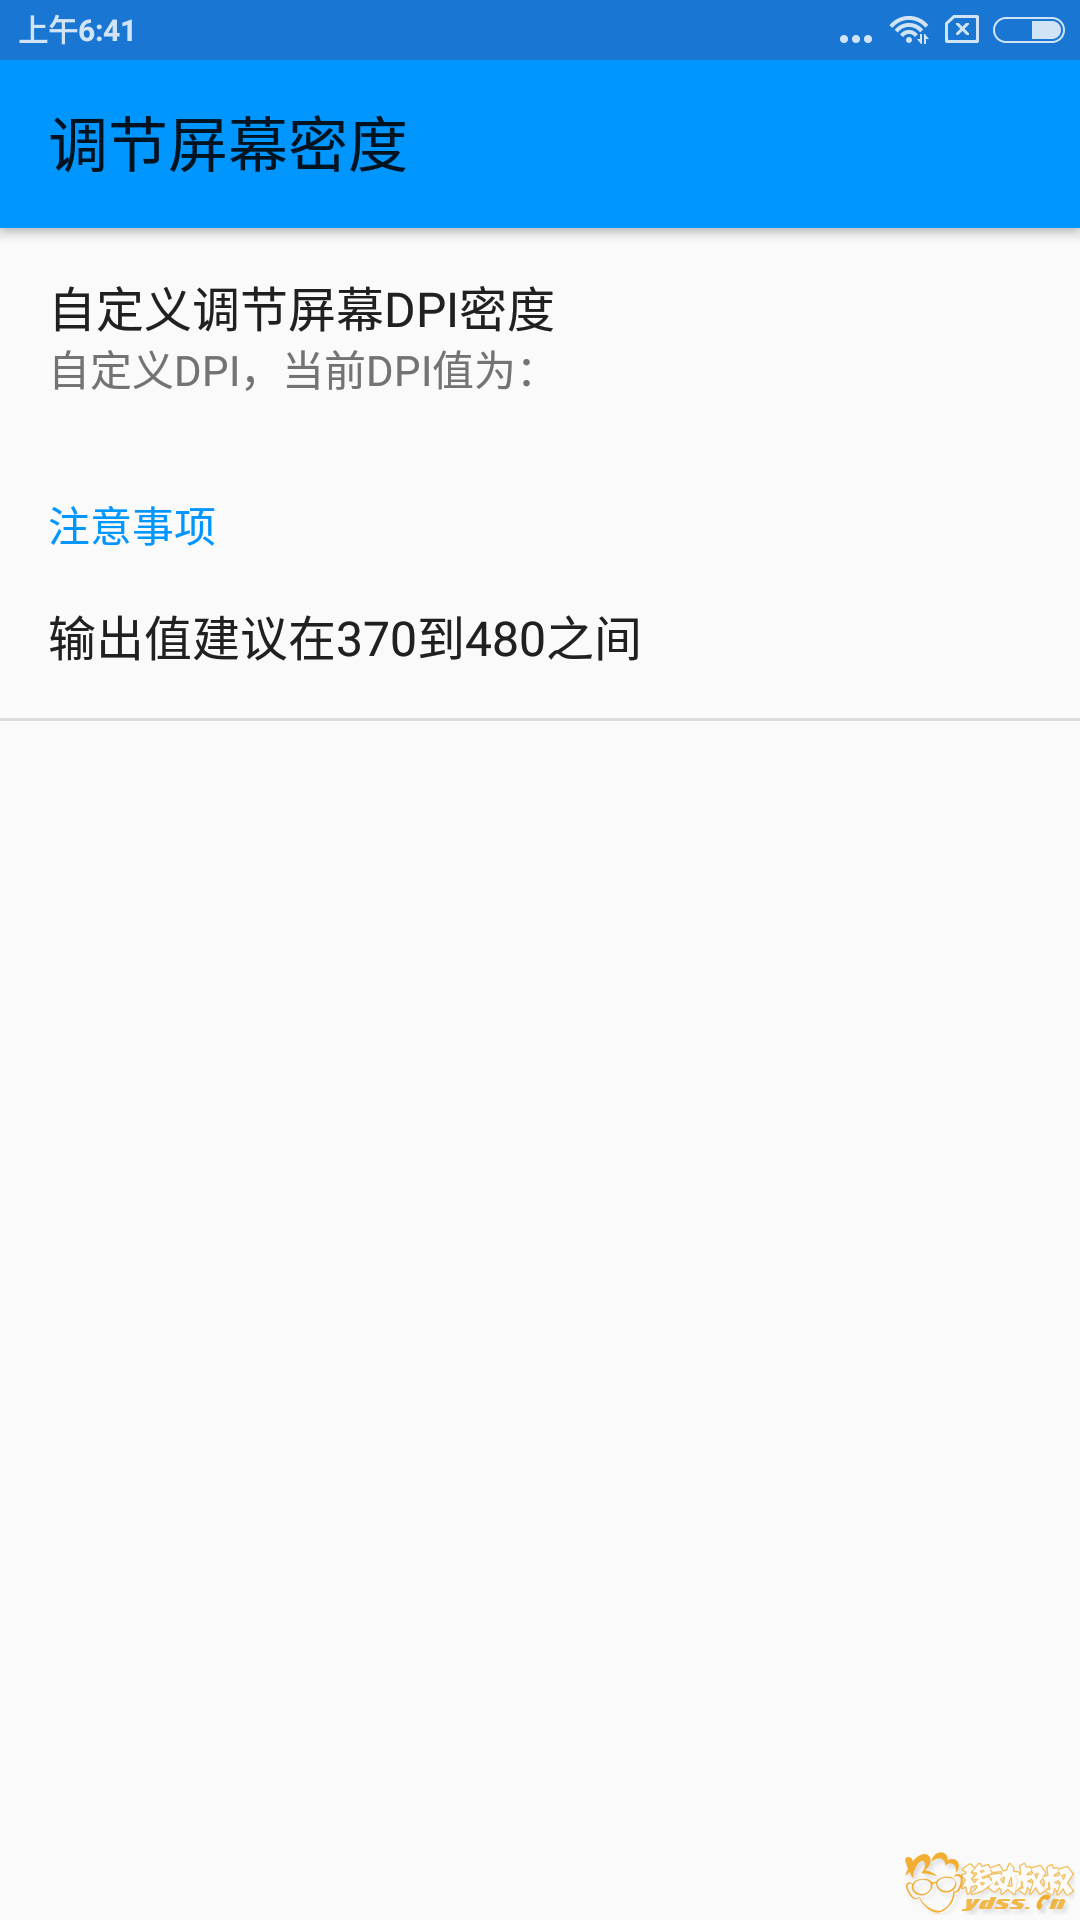 Screenshot_2018-03-27-06-41-57-247_com.zhanhong.tools.png